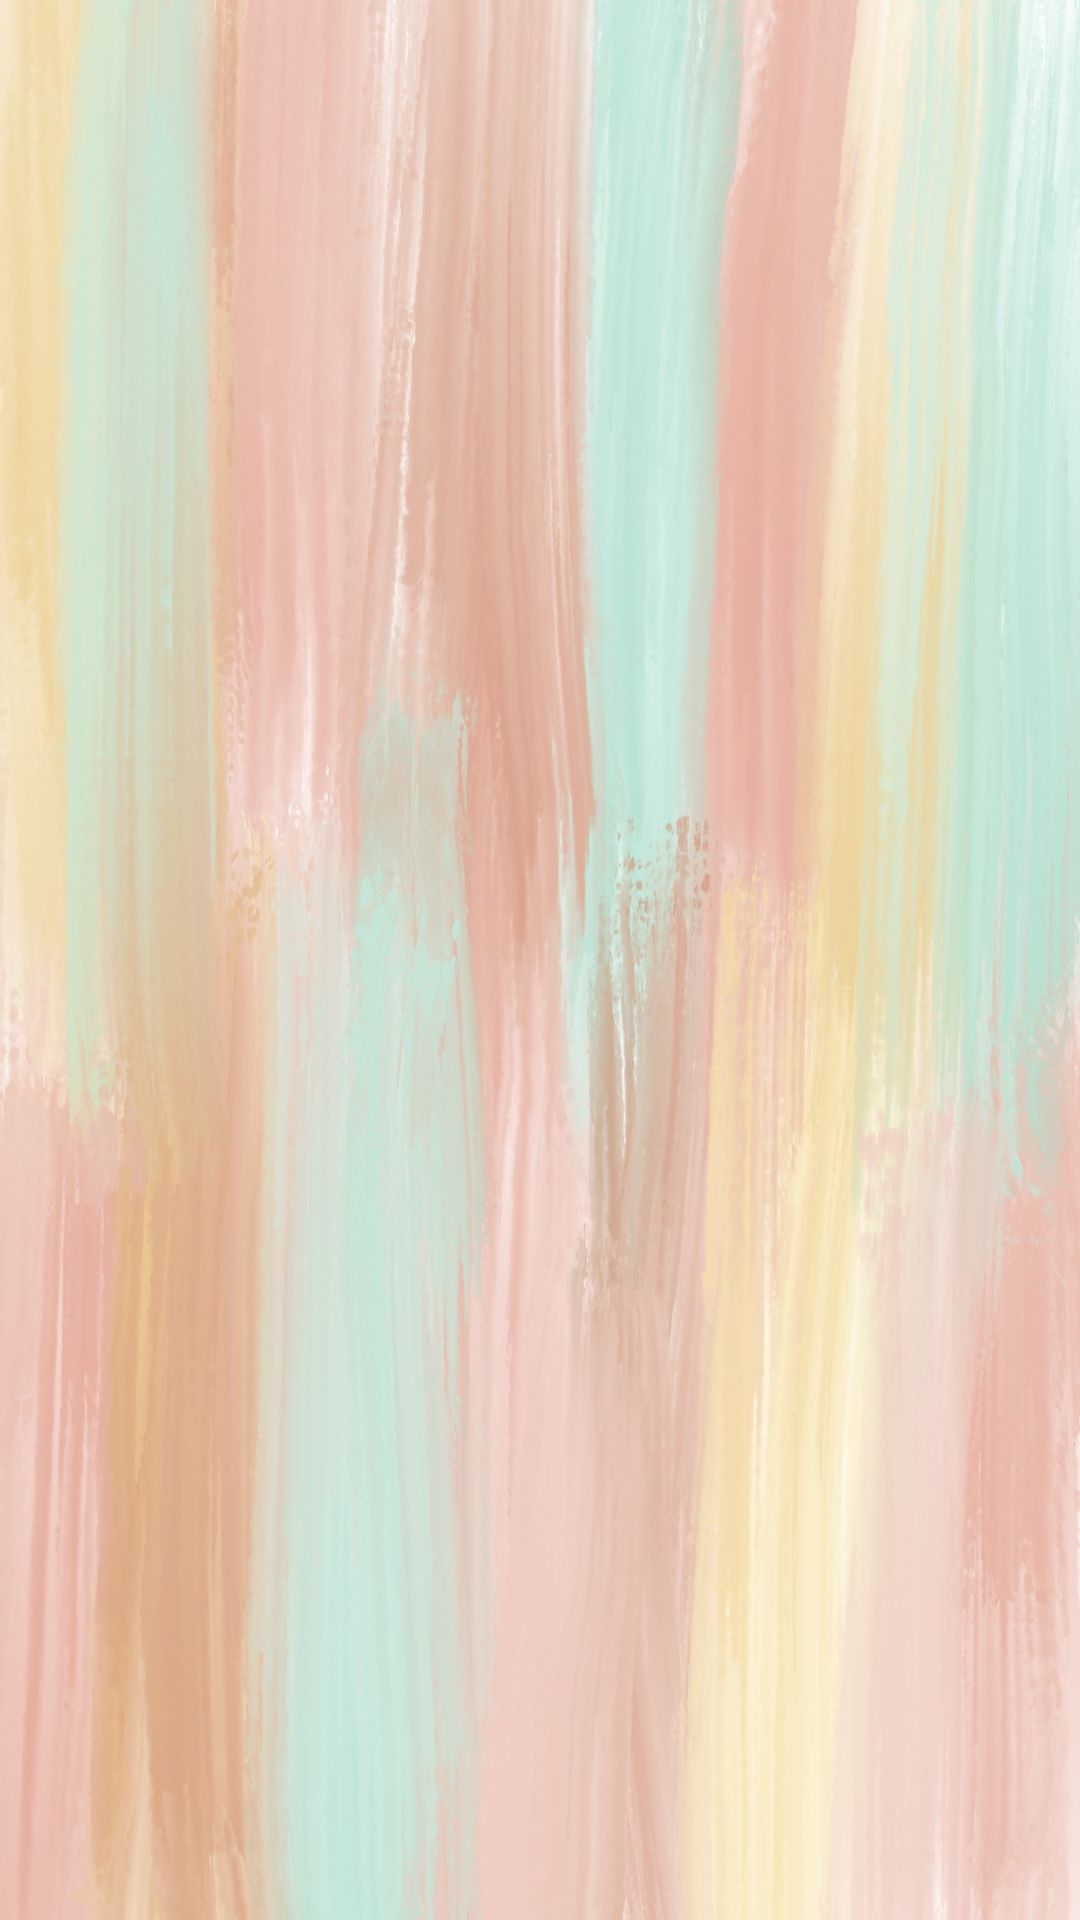 Pastel Watercolor Background Iphone Background Wallpaper Cute Backgrounds For Iphone Cute Backgrounds For Phones